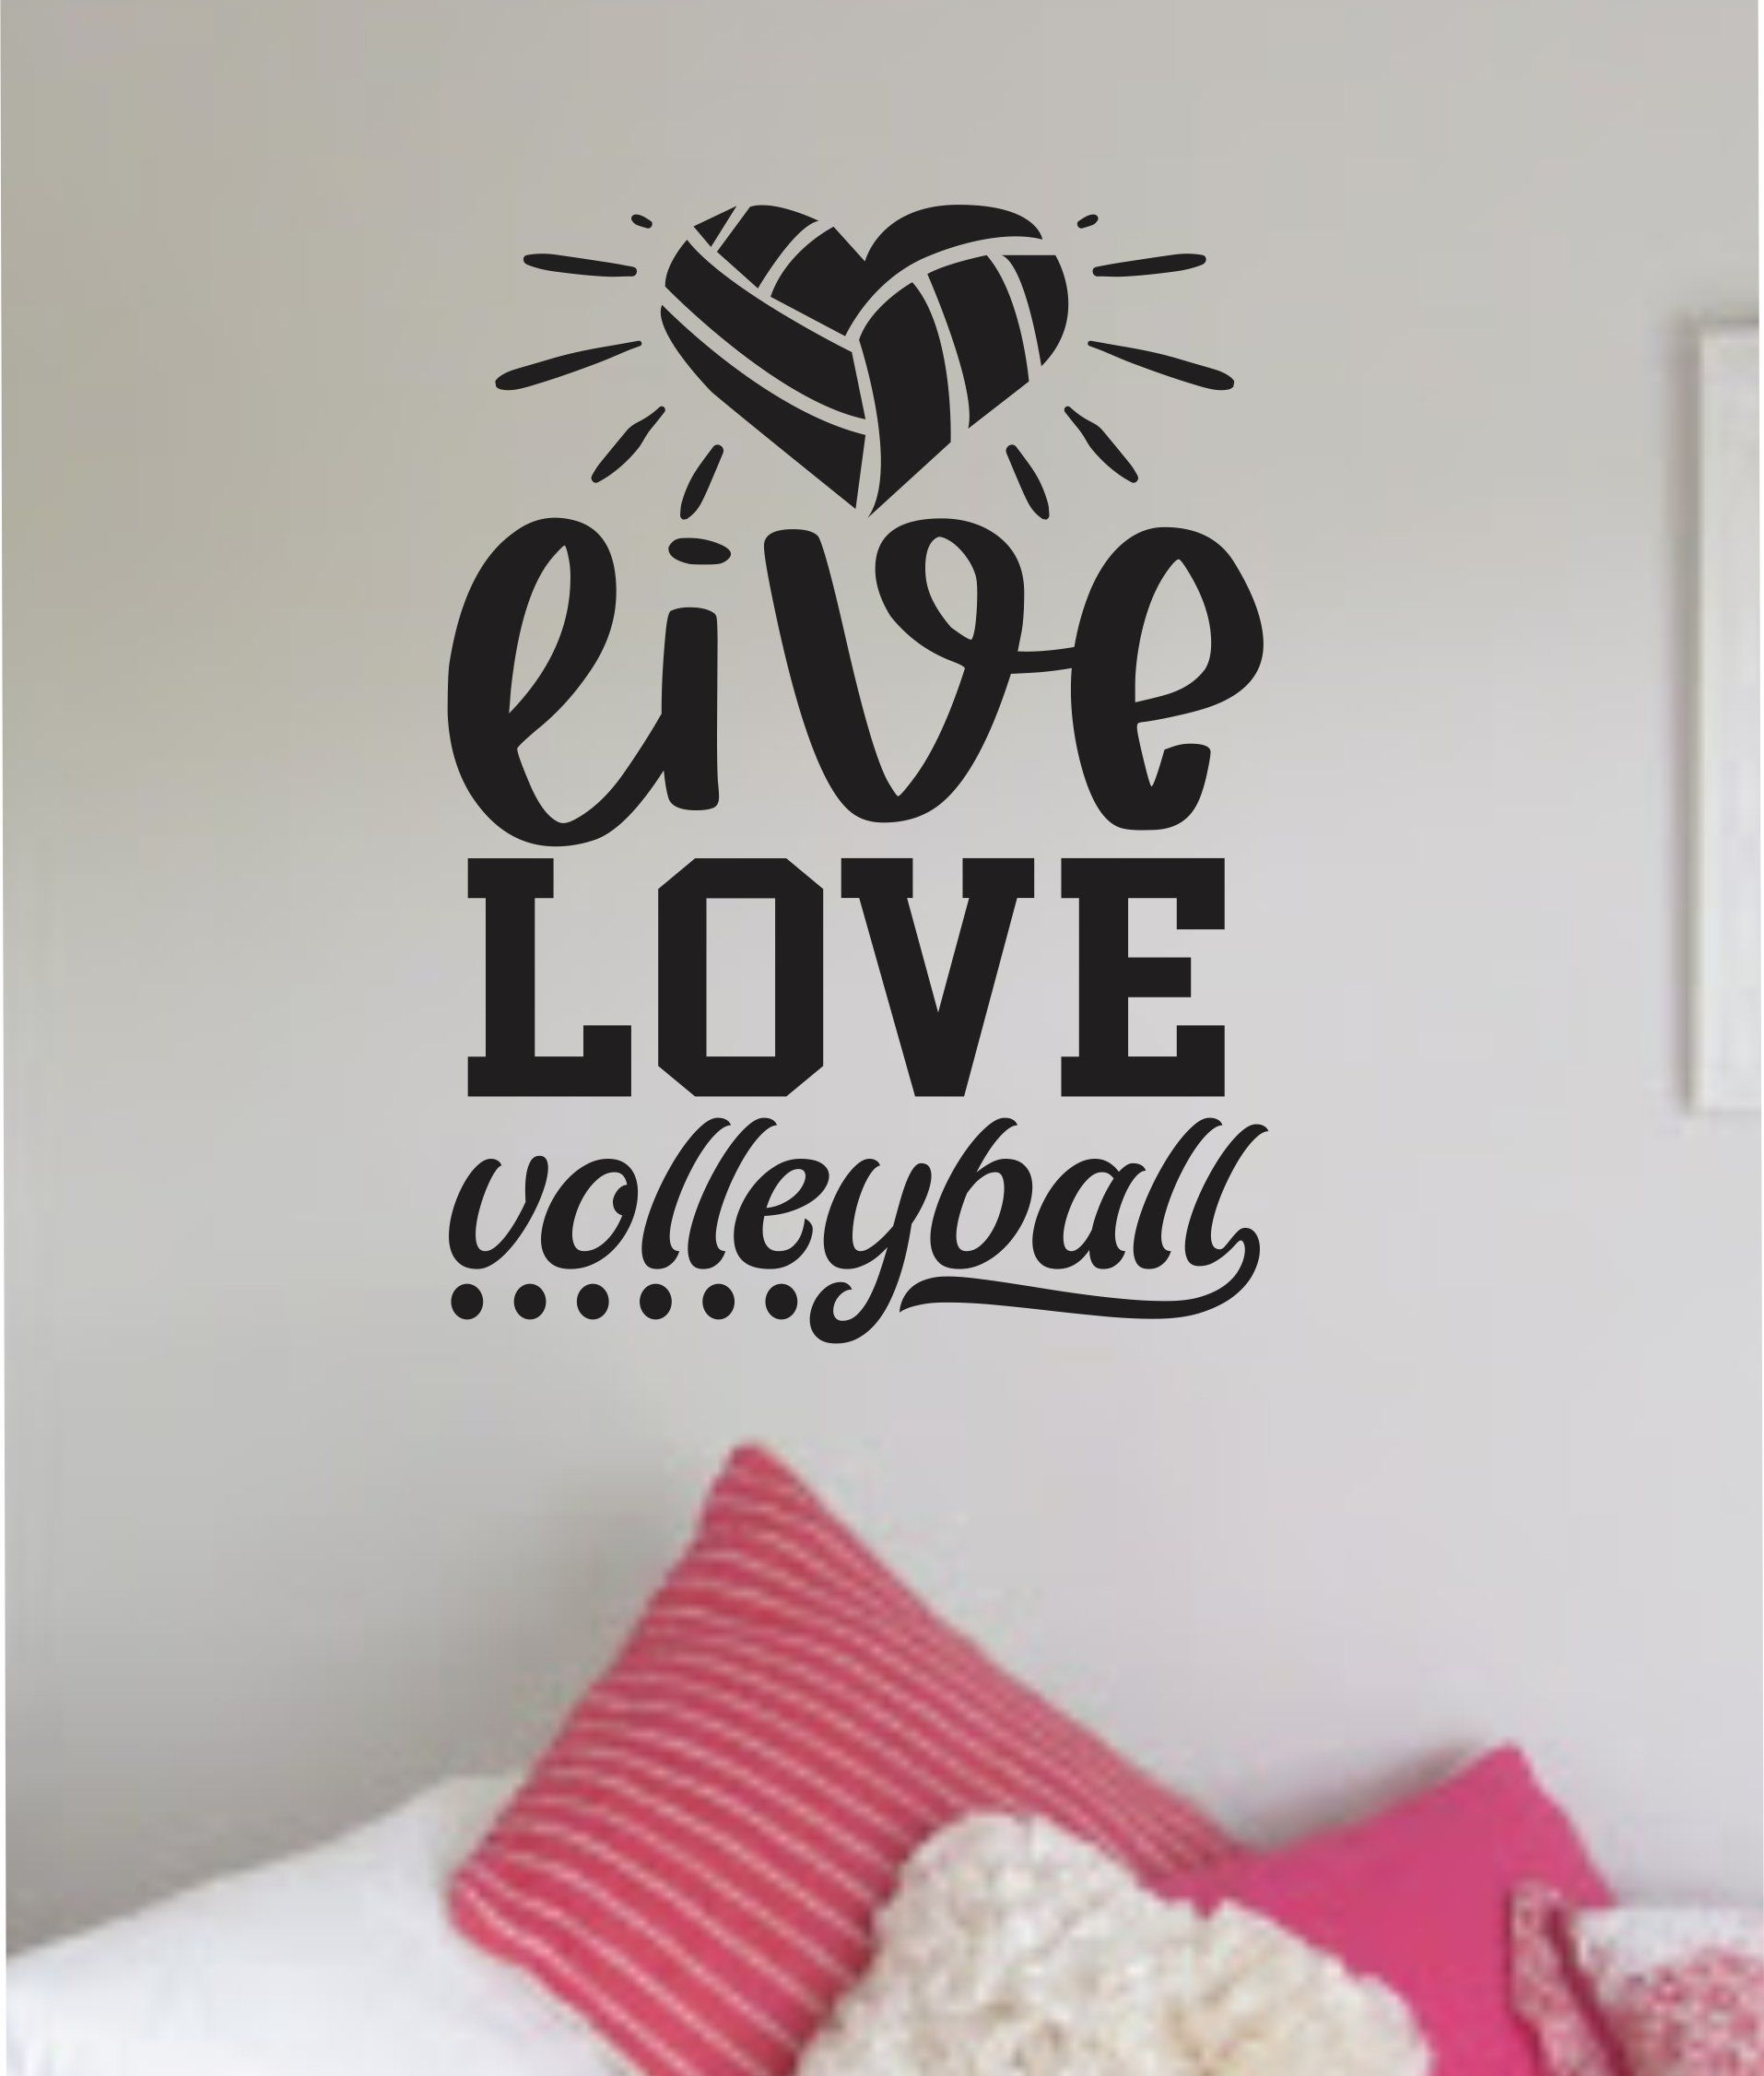 Live Love Volleyball Wall Decal Sticker Vinyl Art Bedroom Room Home Decor Quote Ball Kids Teen Baby Boy Girl Nursery Sports Fitness Inspirational Beach - white